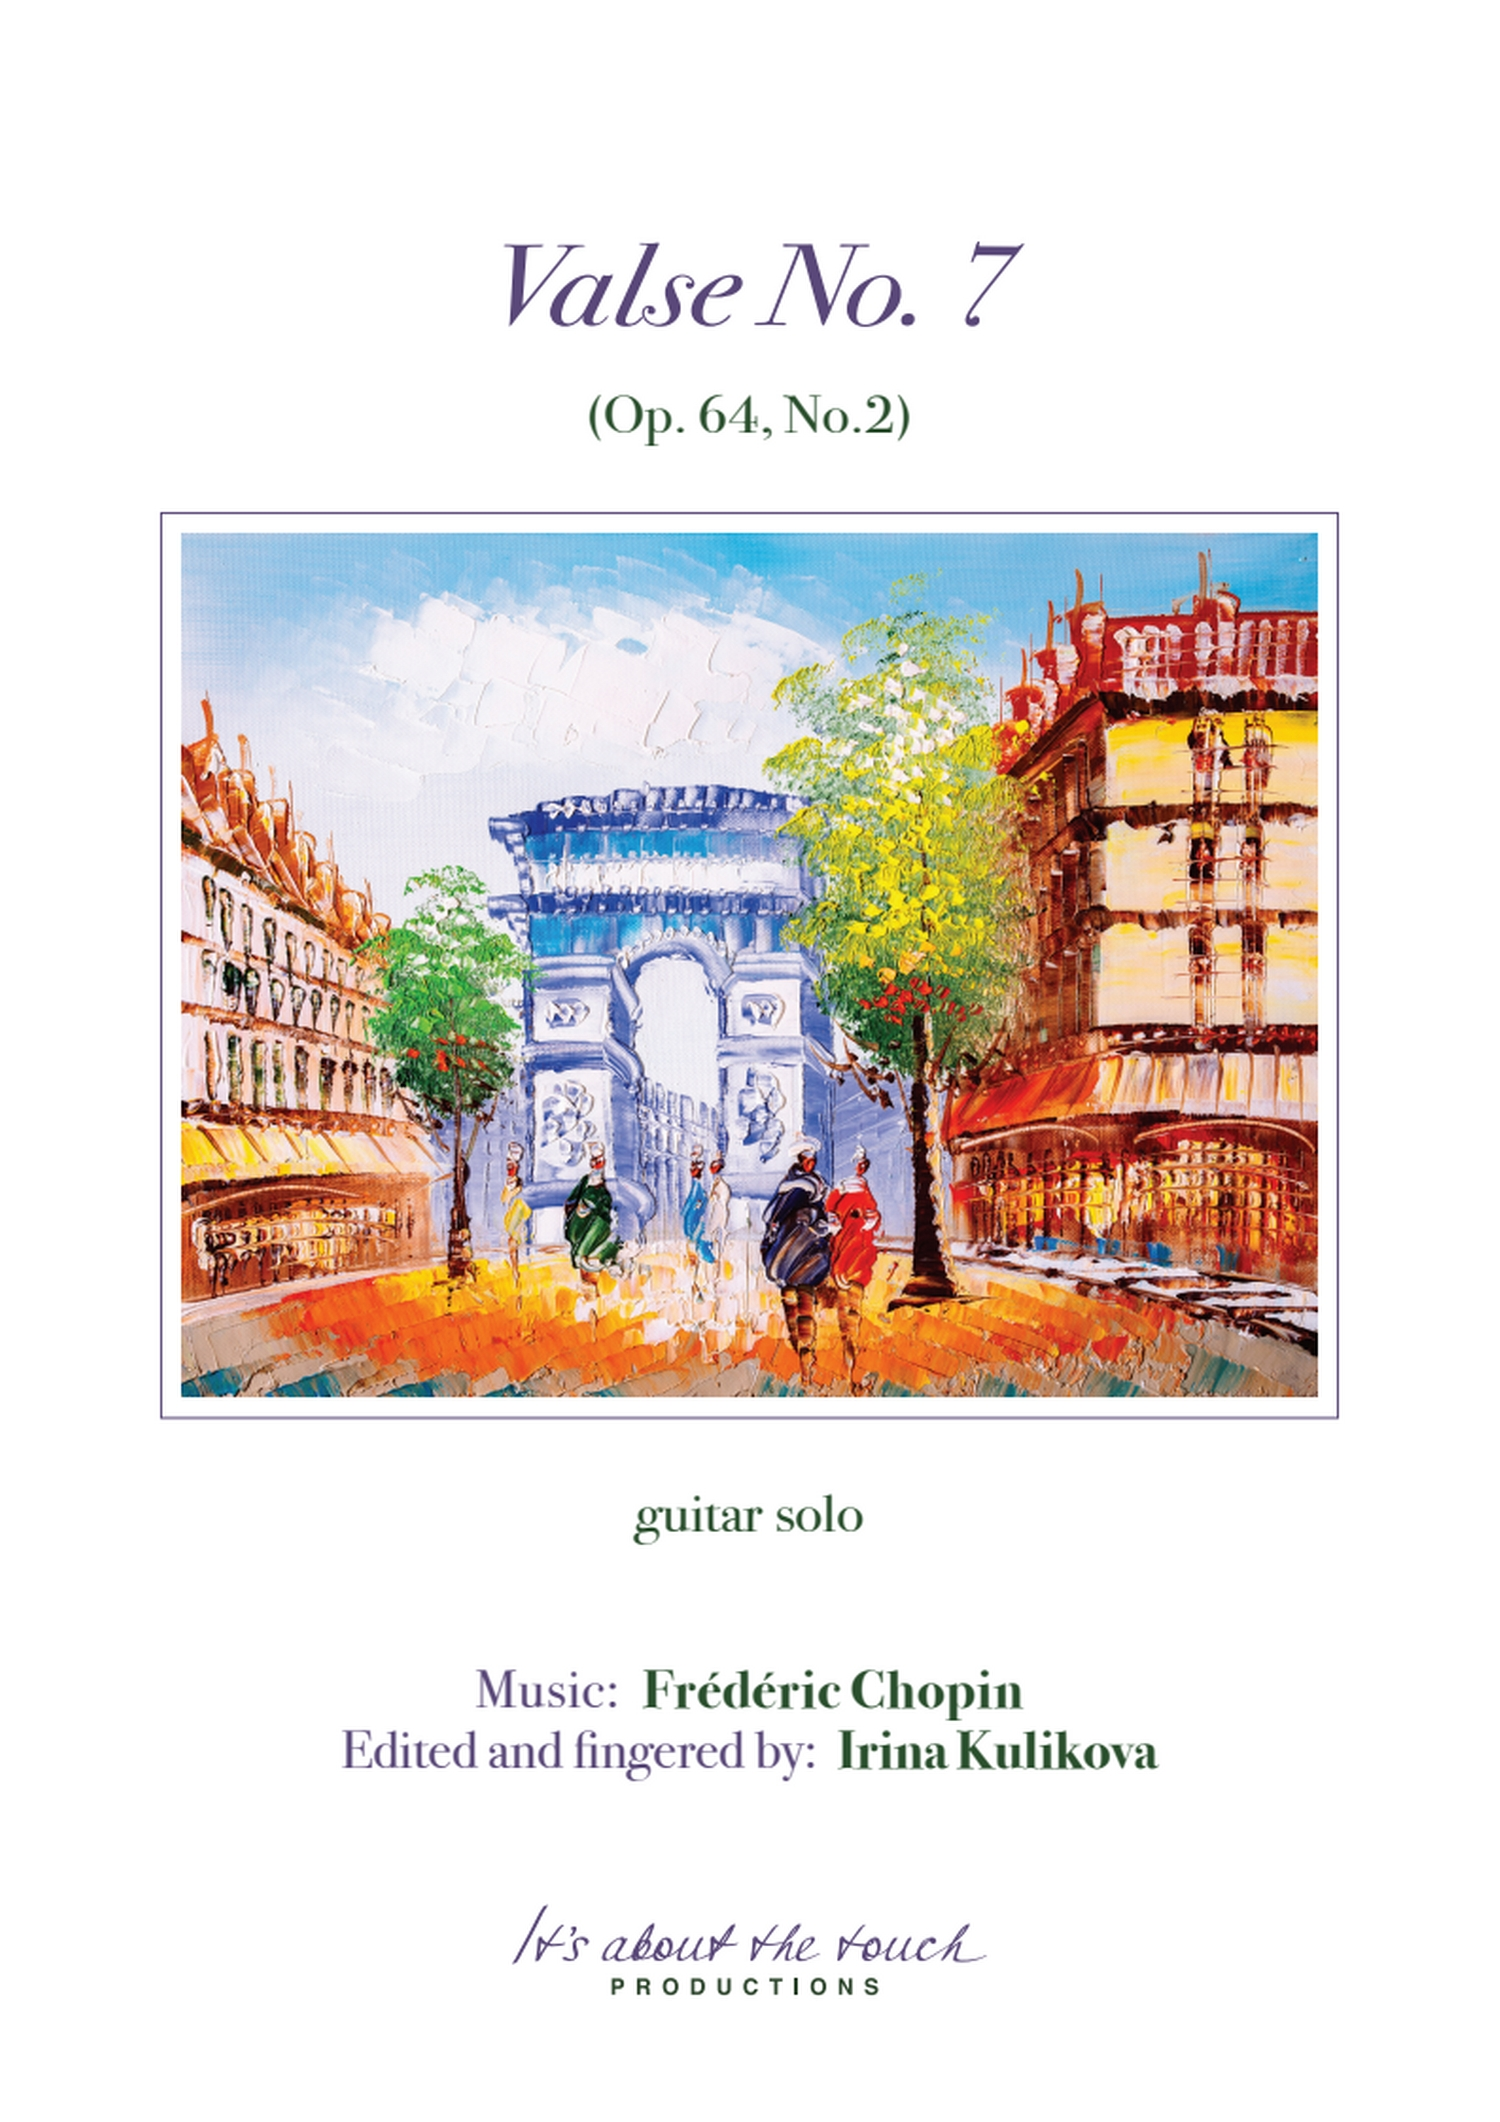 Chopin Valse No. 7 score cover